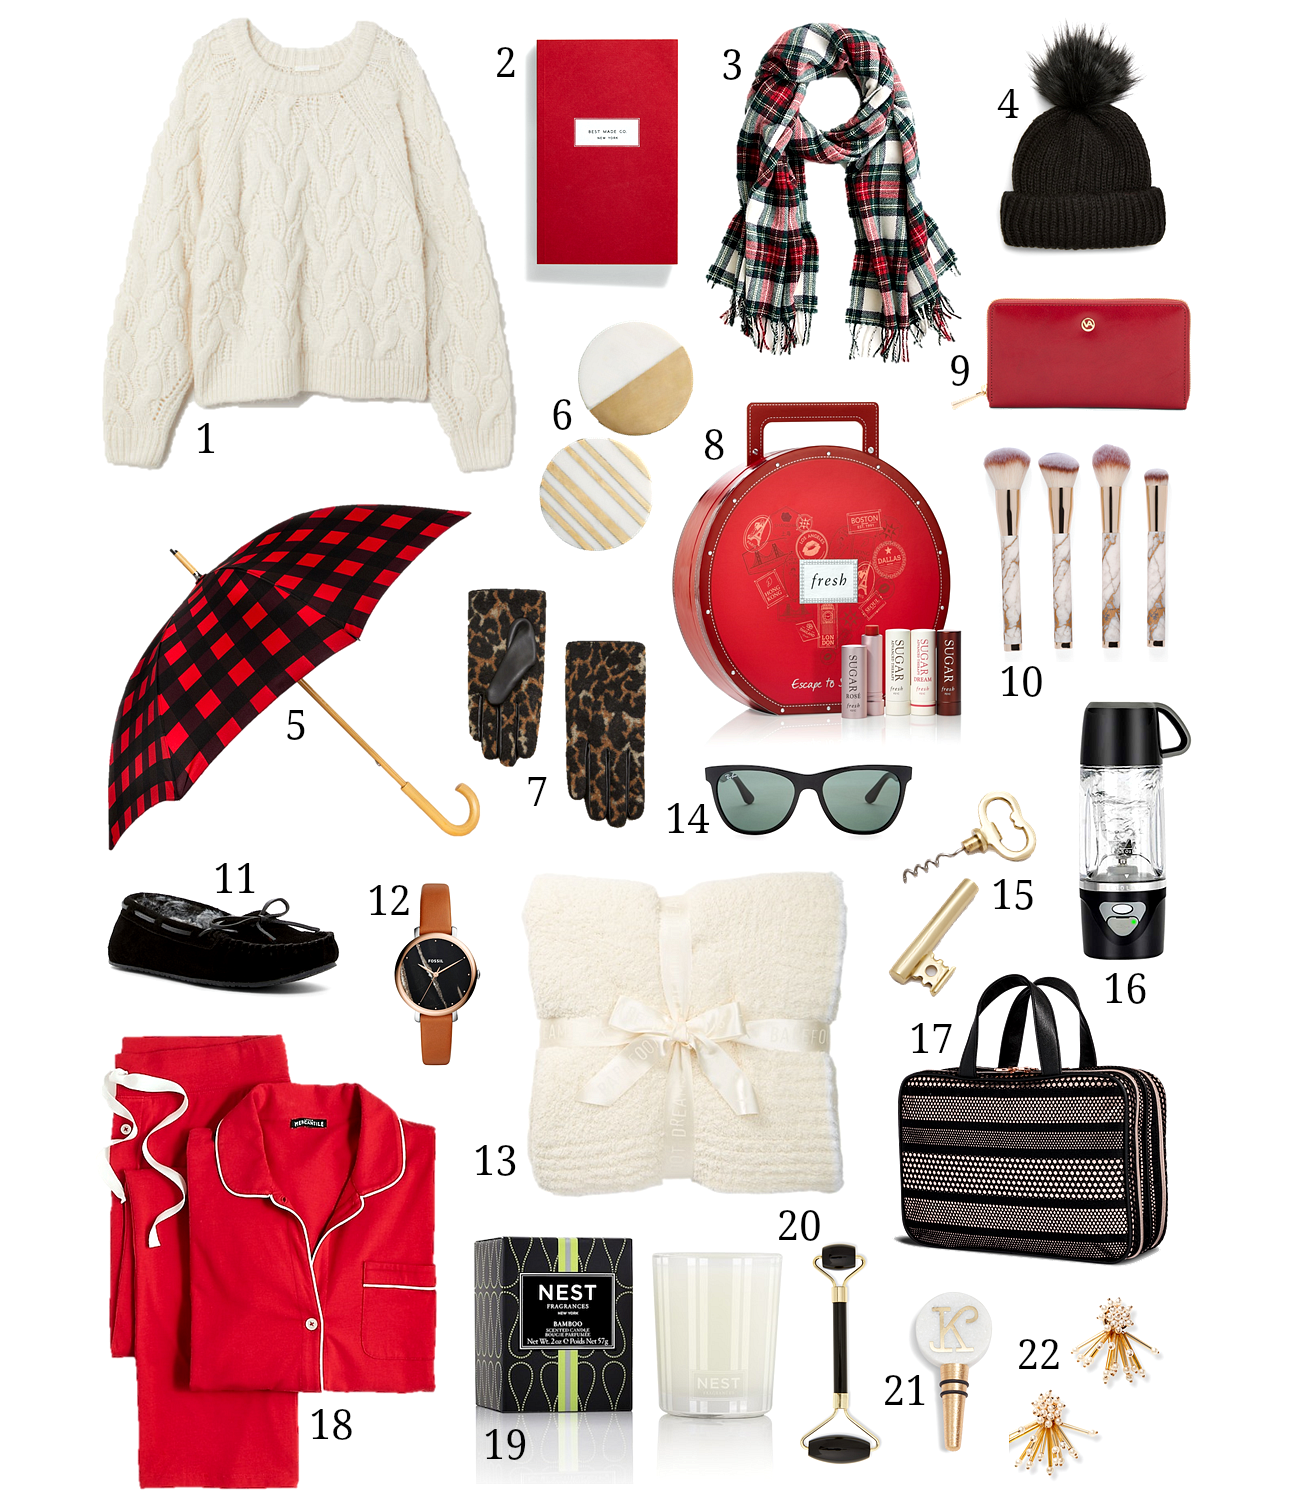 gift guide for her under $50